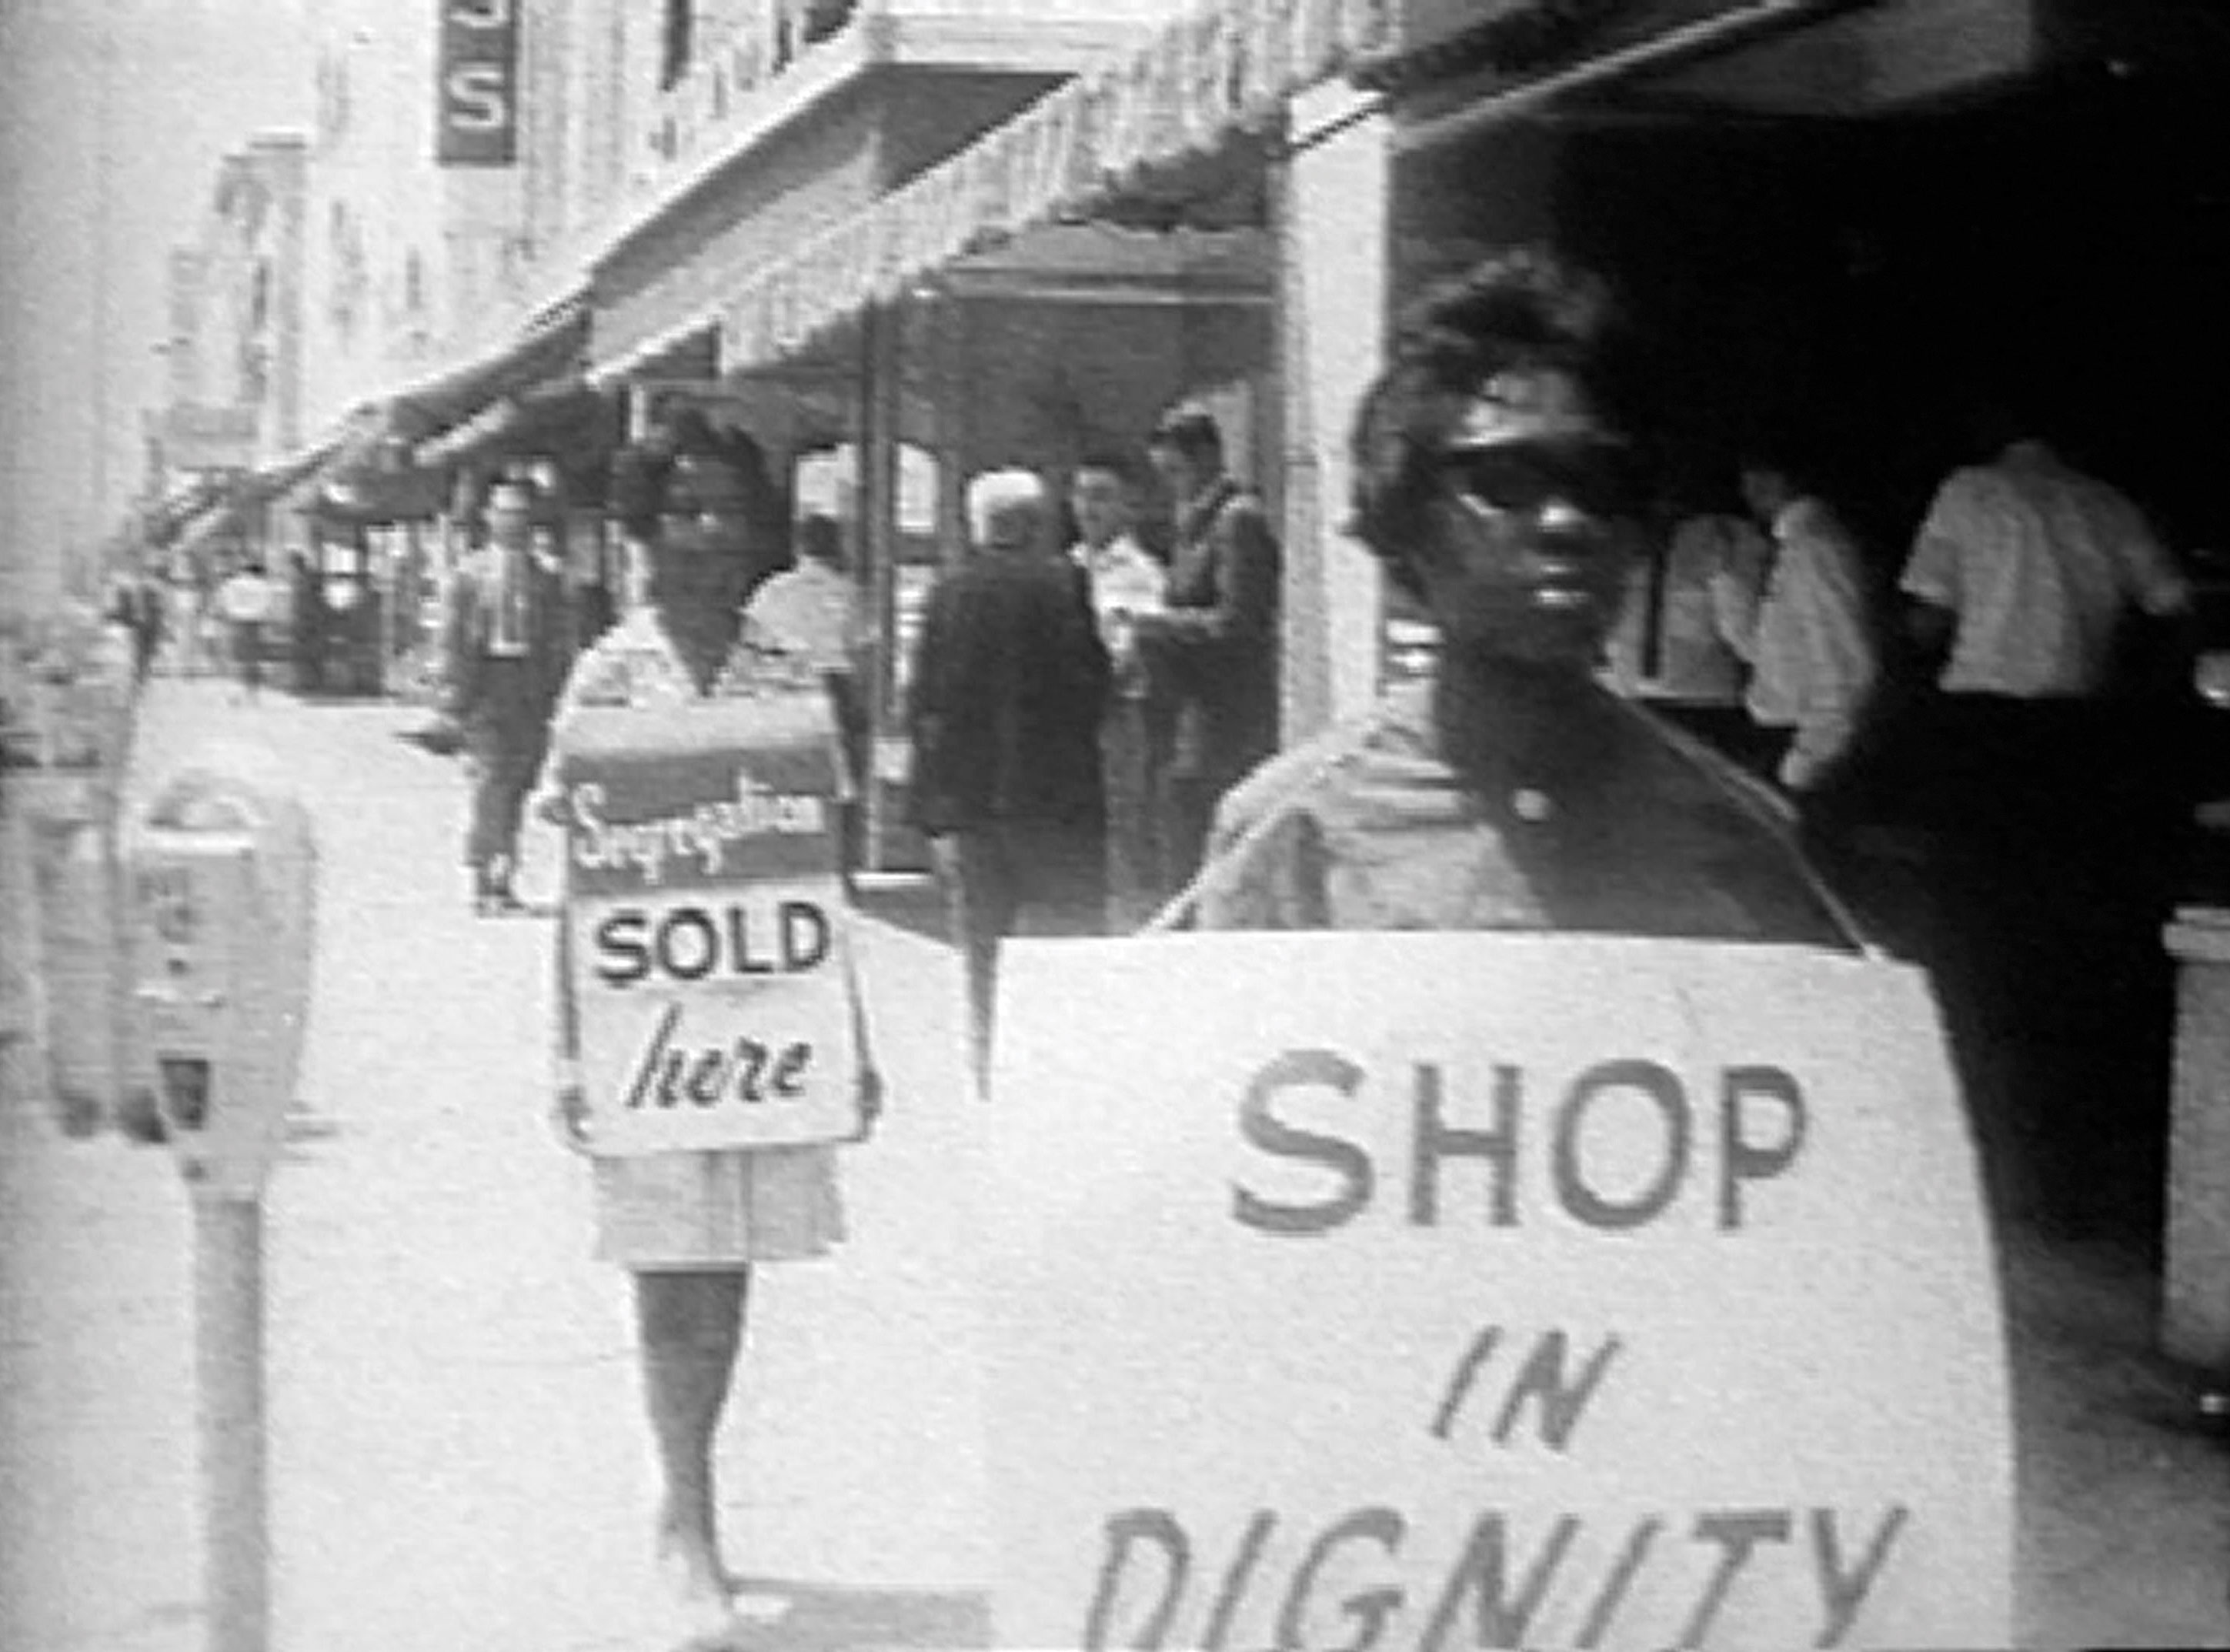 reasons american civil rights movement began falter during Results 1 - 10 of 30  though the civil war began the movement to extend equality to african  the  promising start towards racial equality soon faltered during the.